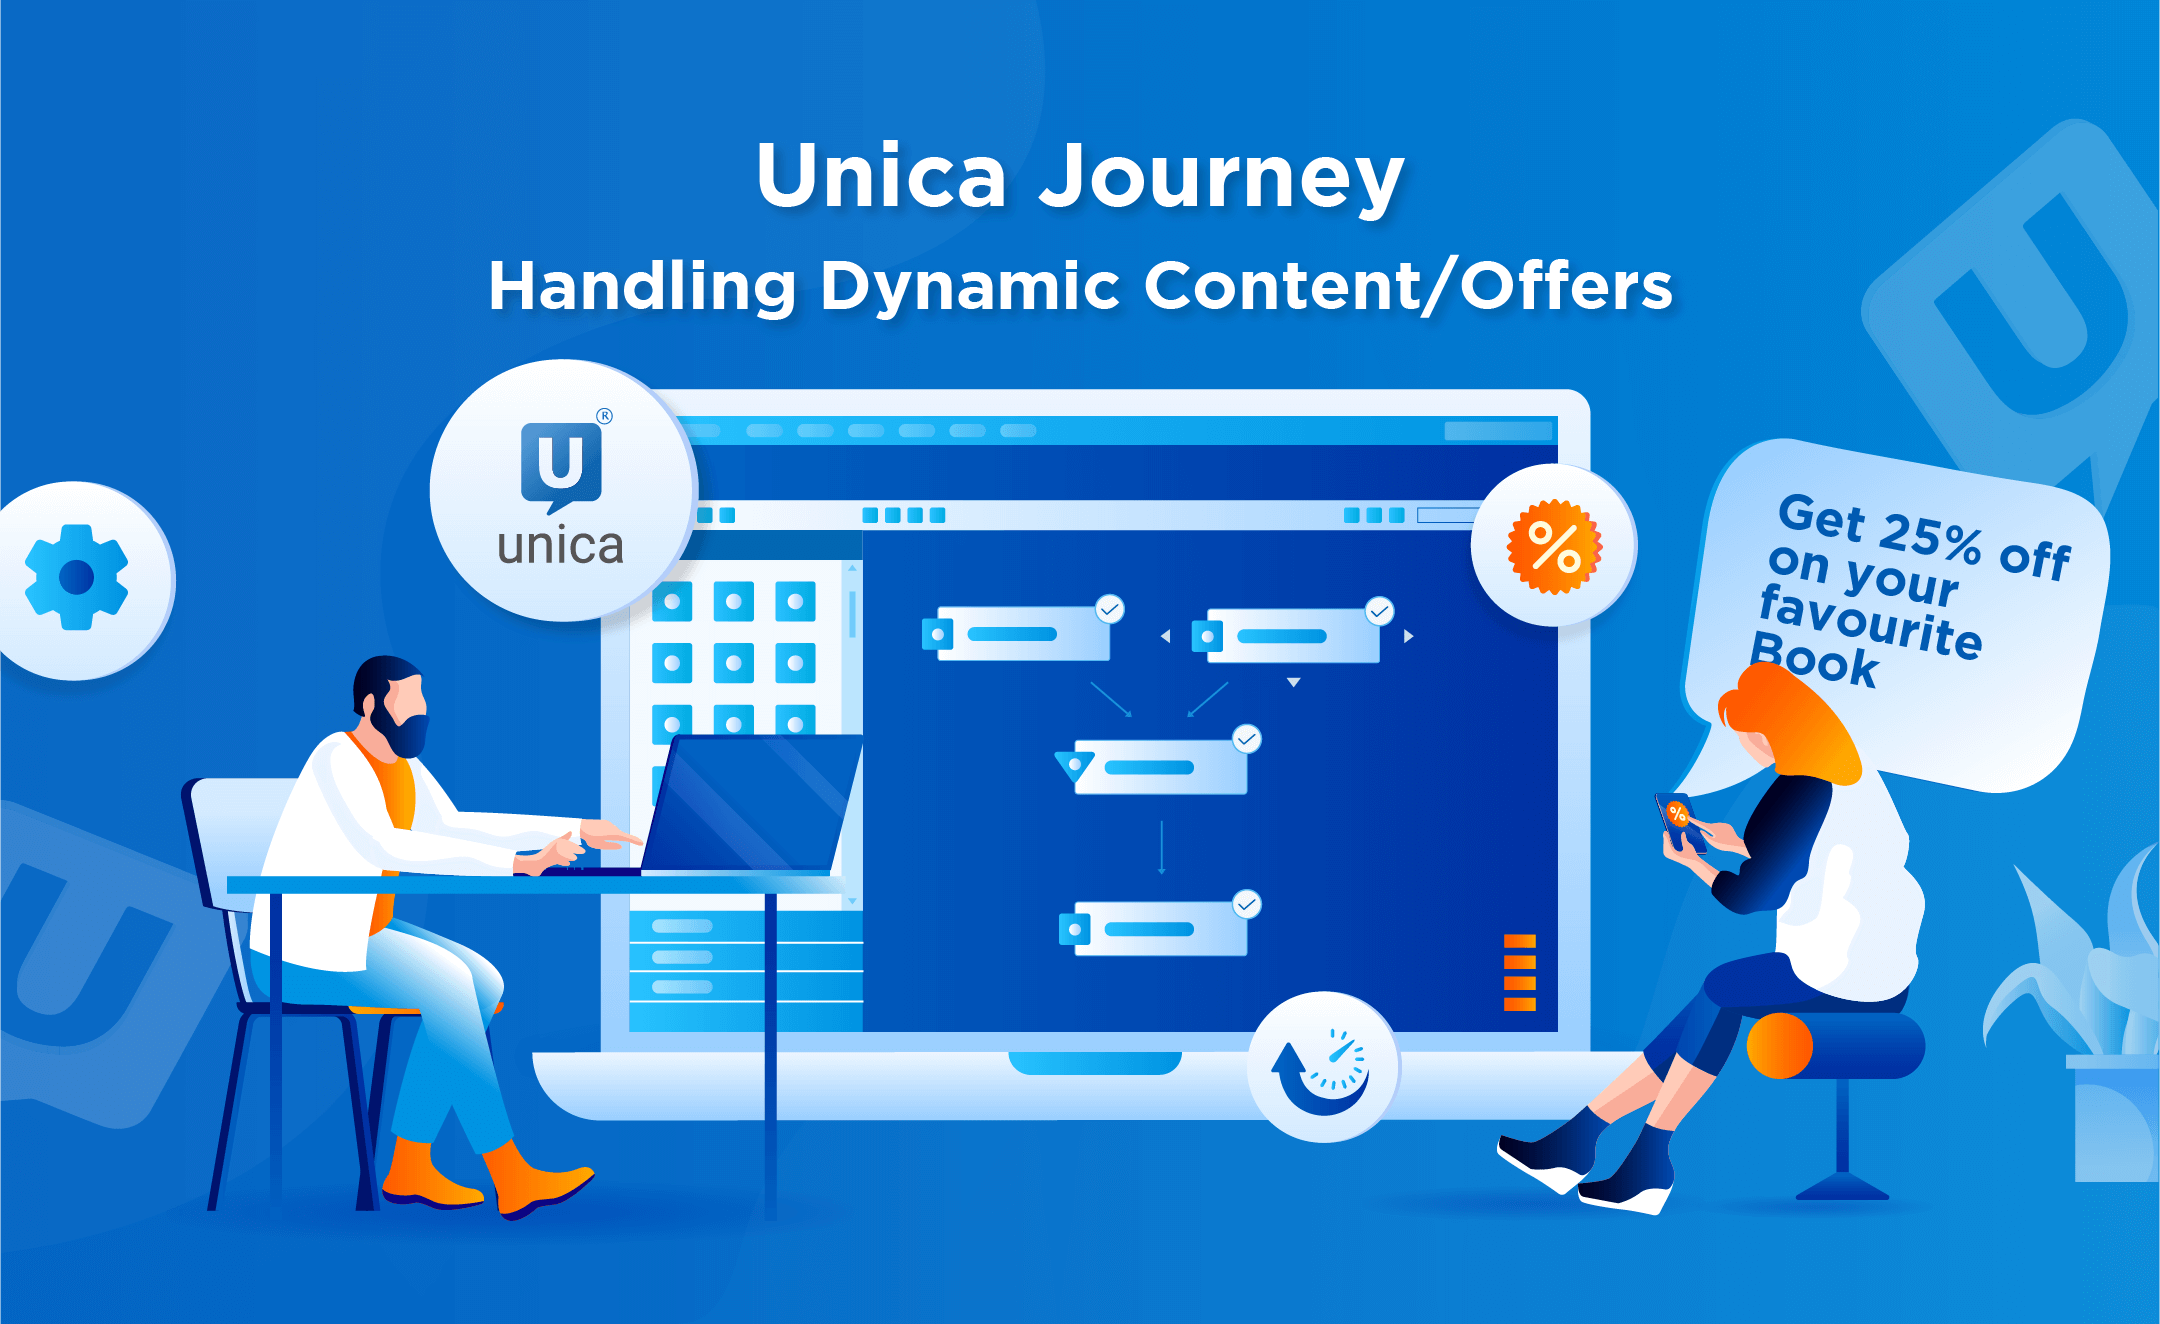 Unica Journey - Dynamic Content and Offers